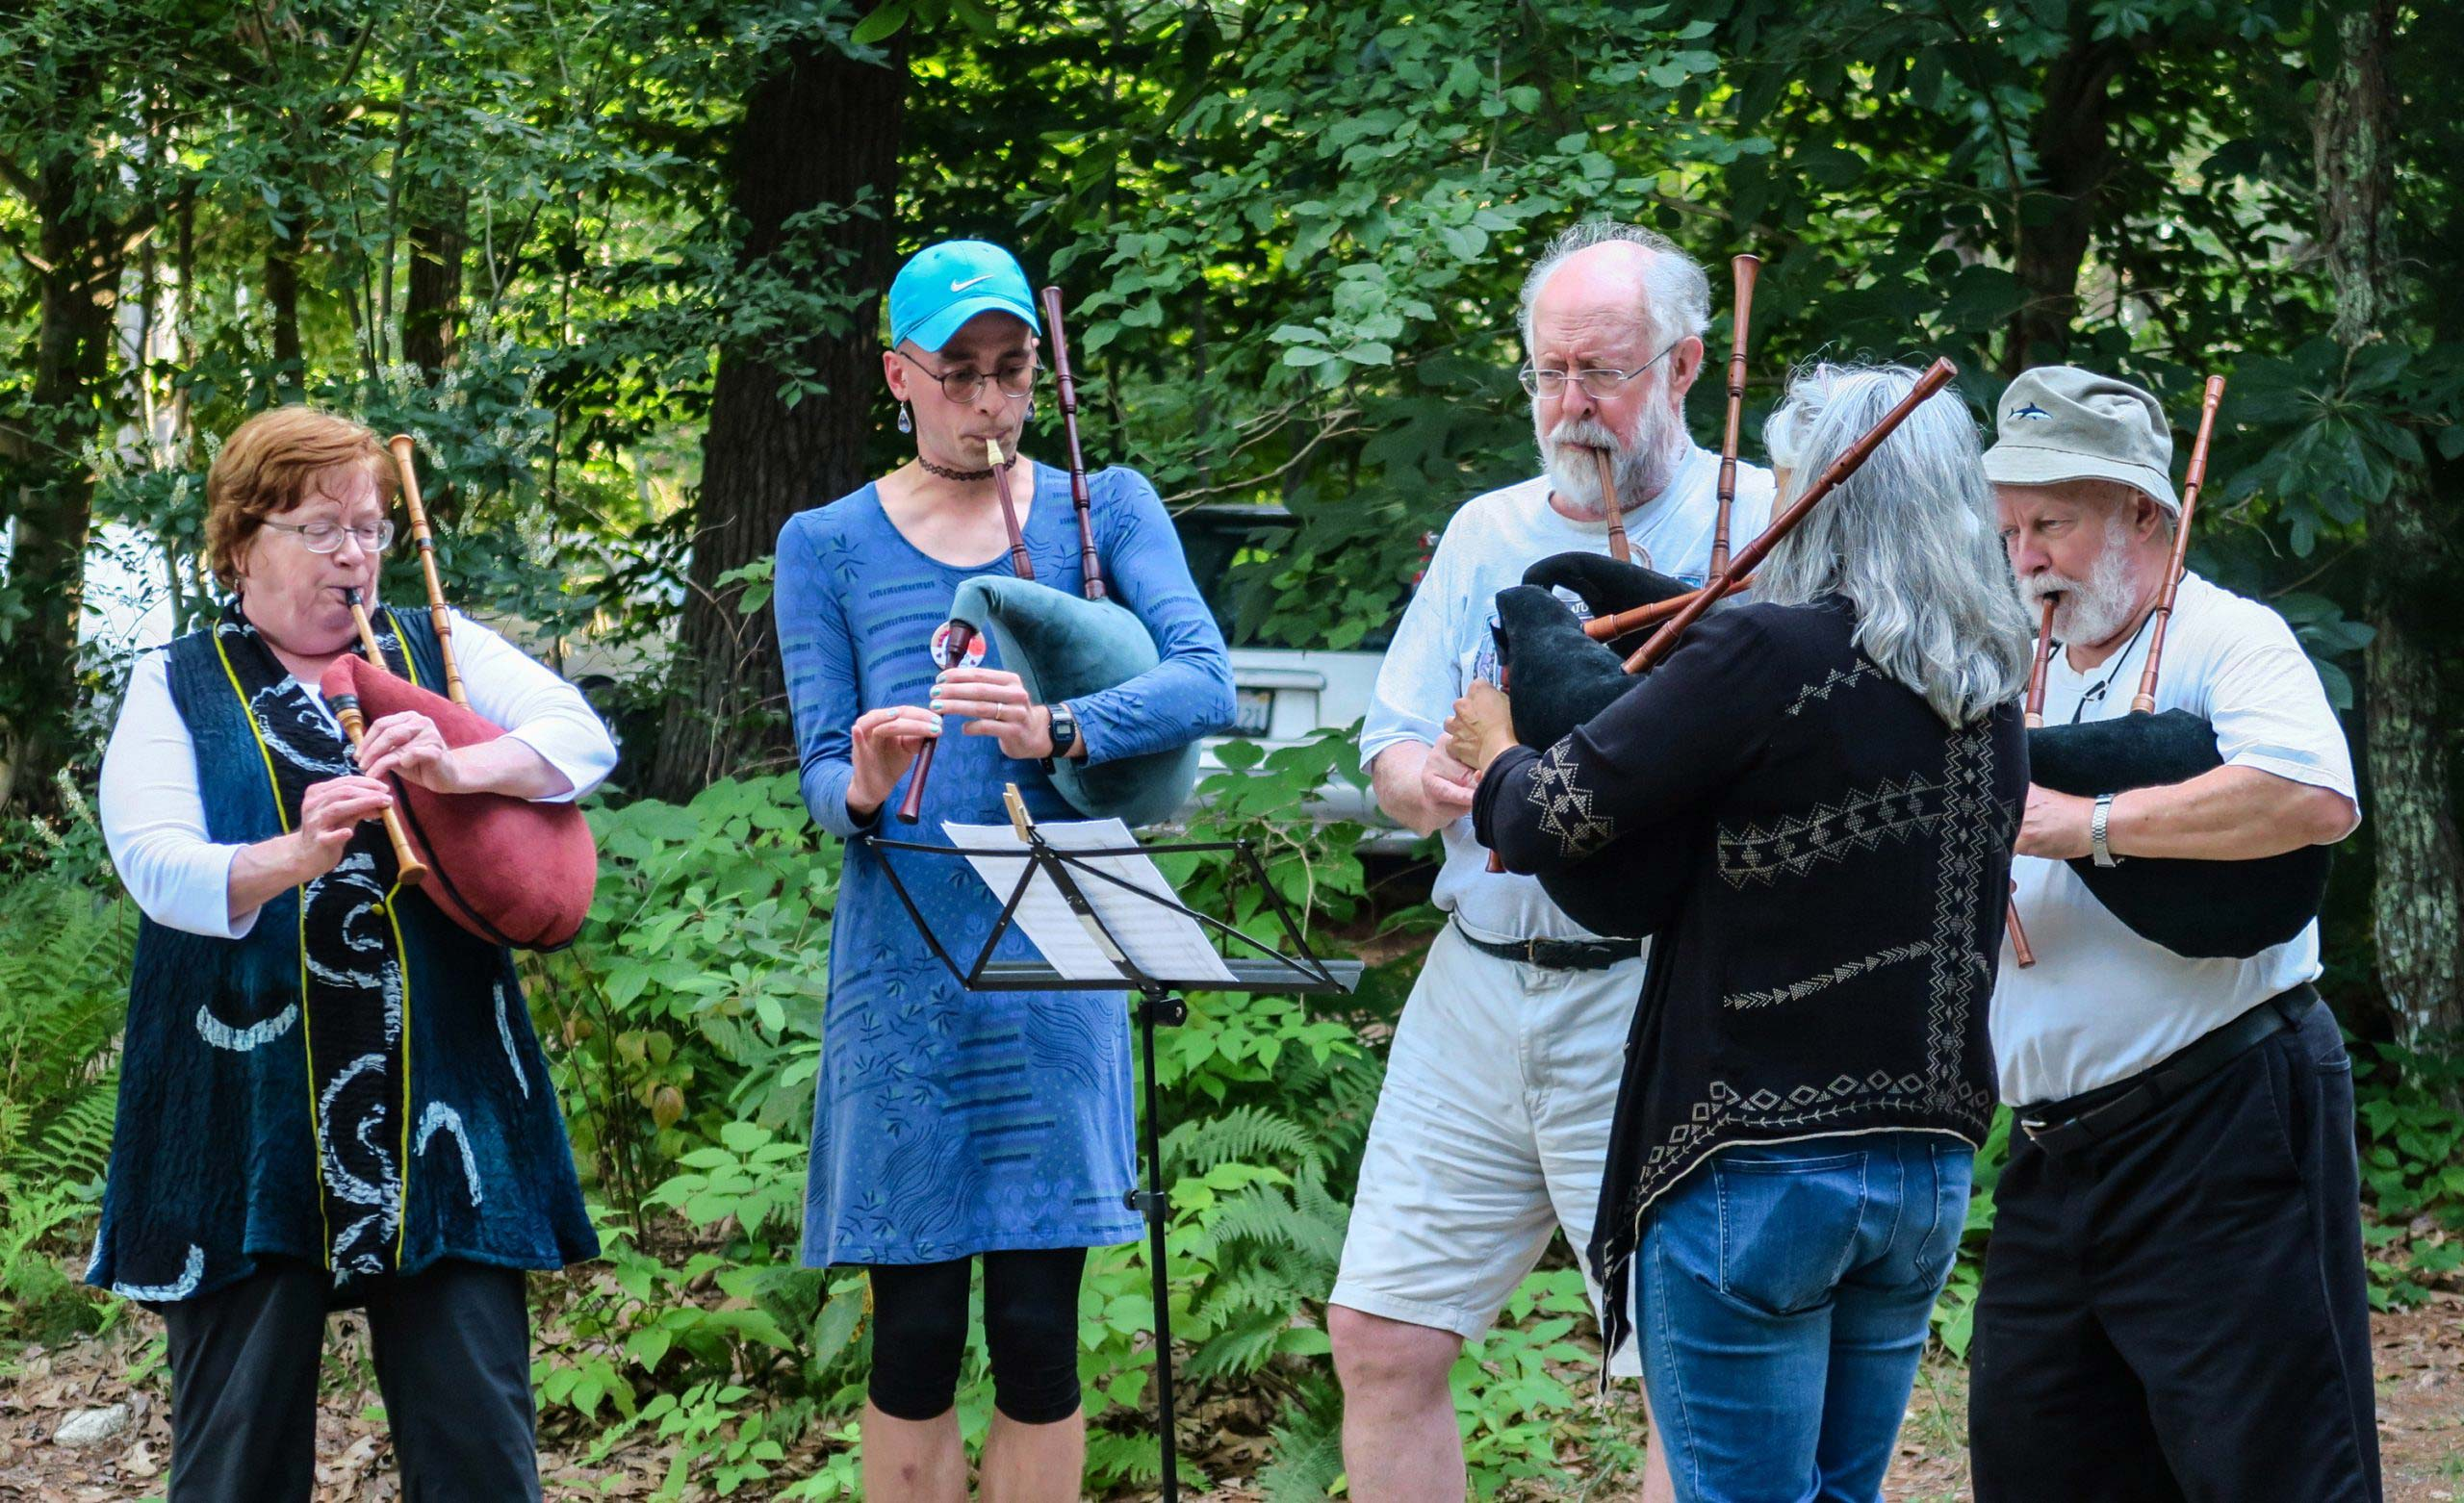 A bagpipe workshop at Early Music Week